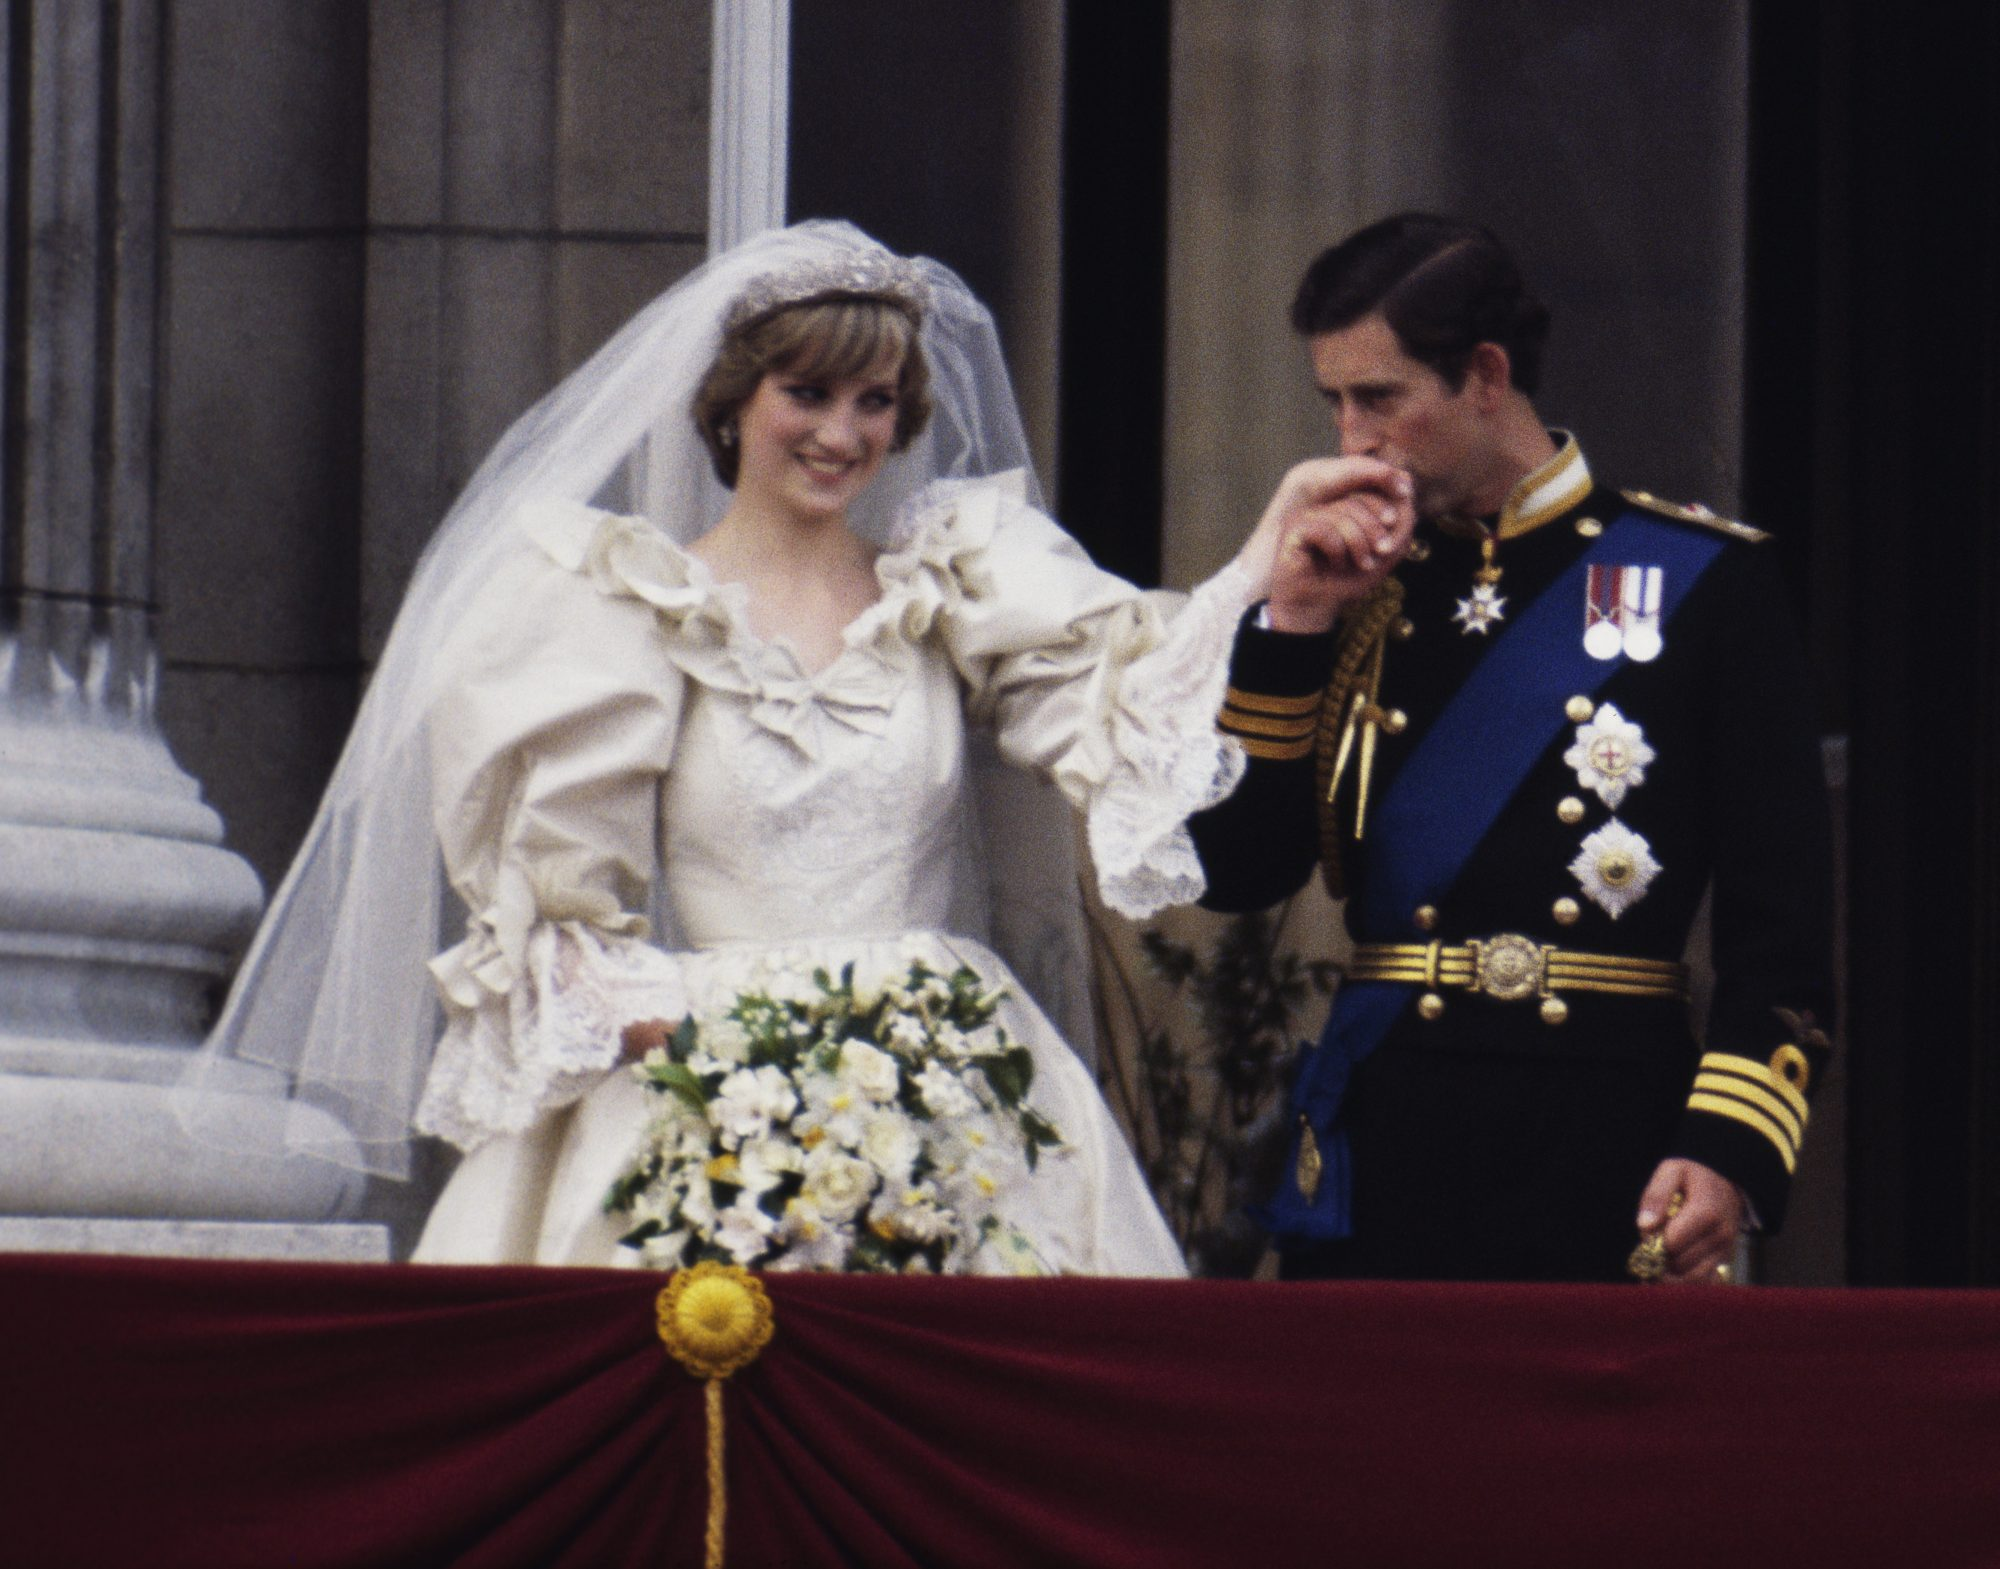 Princess Diana and Prince Charles Wedding Day